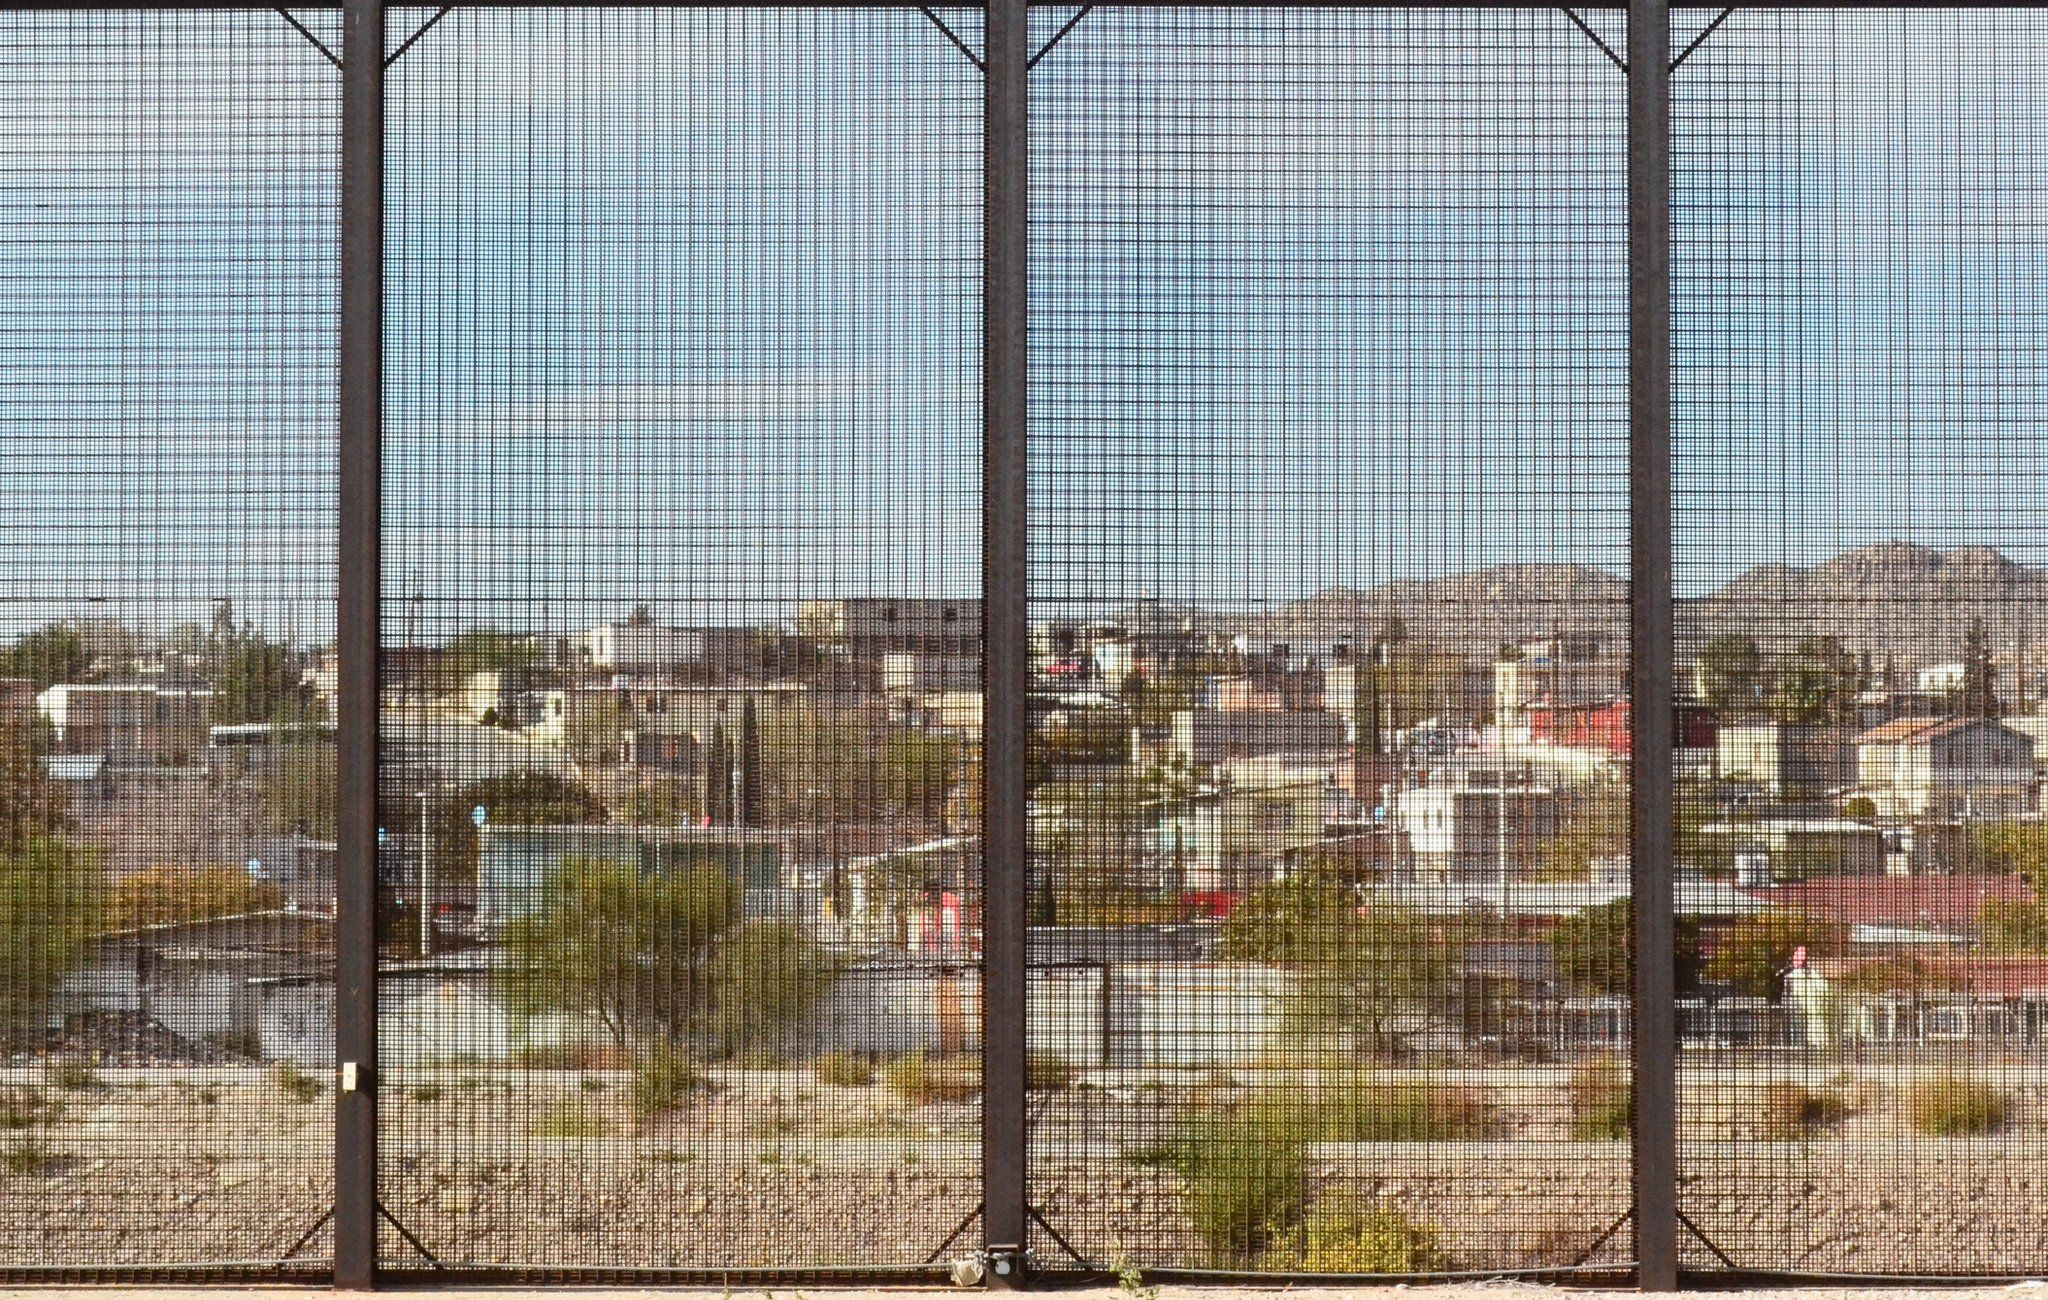 Fence at the US-Mexico border